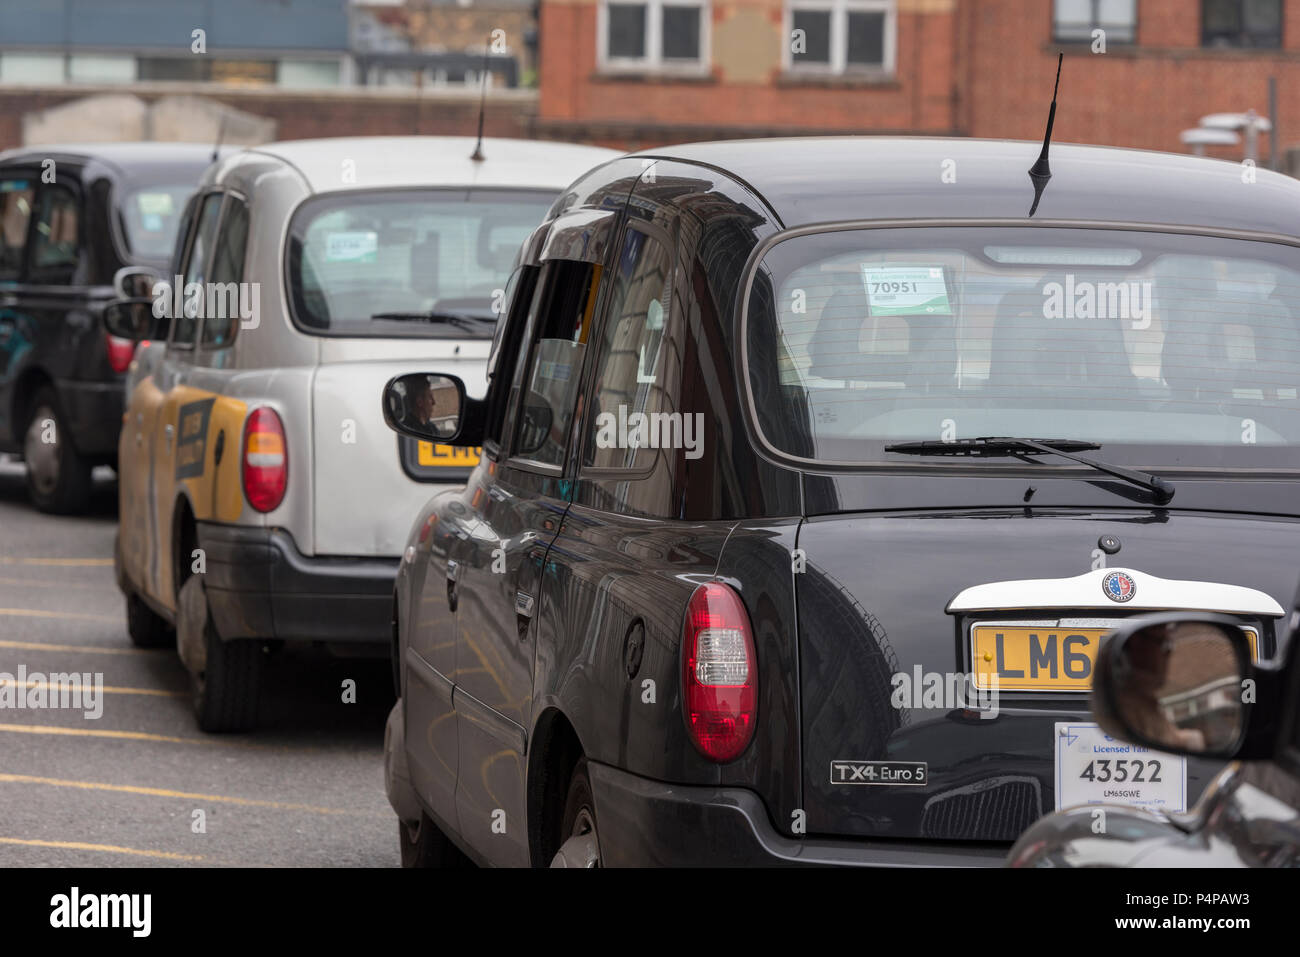 Black Cab London Fares >> A Row Of London Black Cabs Taxis Waiting For Fares Stock Photo